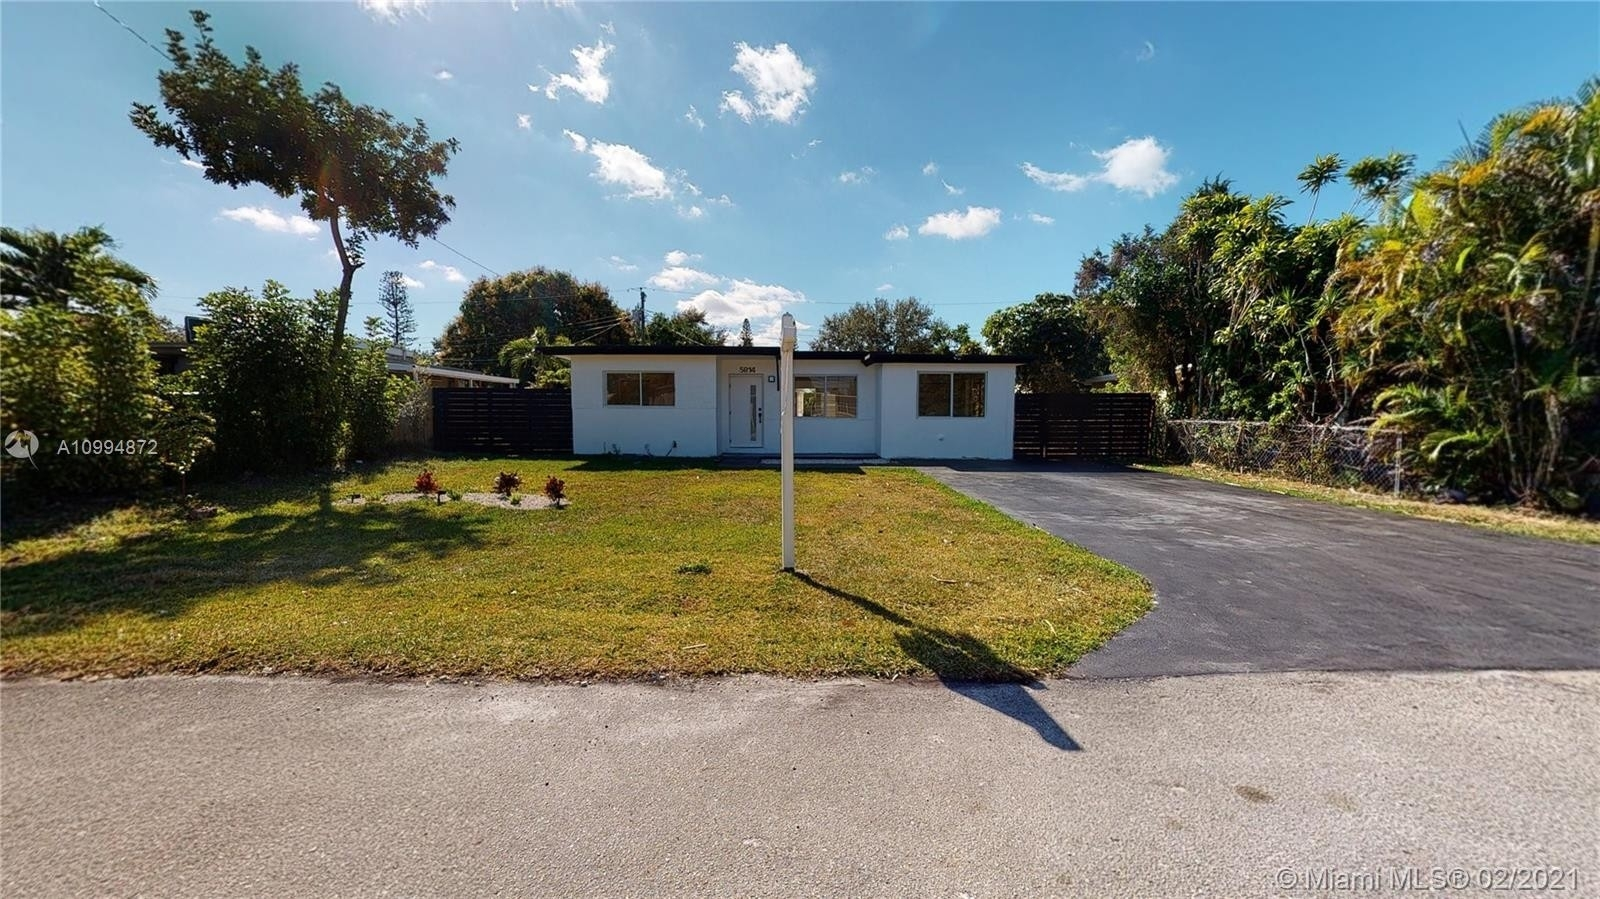 Single Family Home for Sale at 441 Corridor, Hollywood, FL 33021